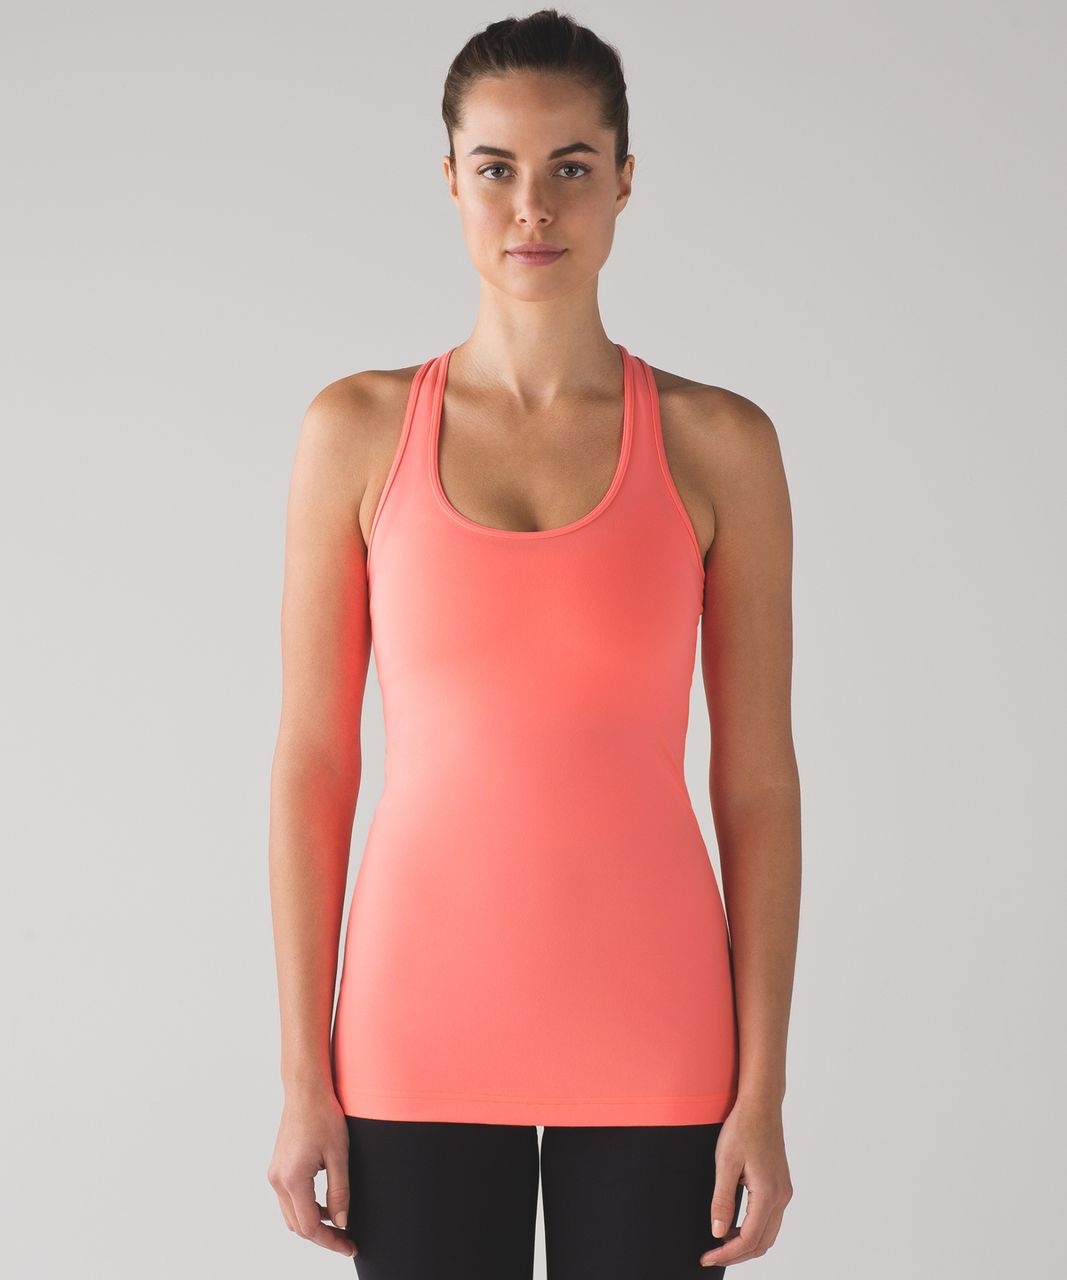 Lululemon Cool Racerback - Grapefruit